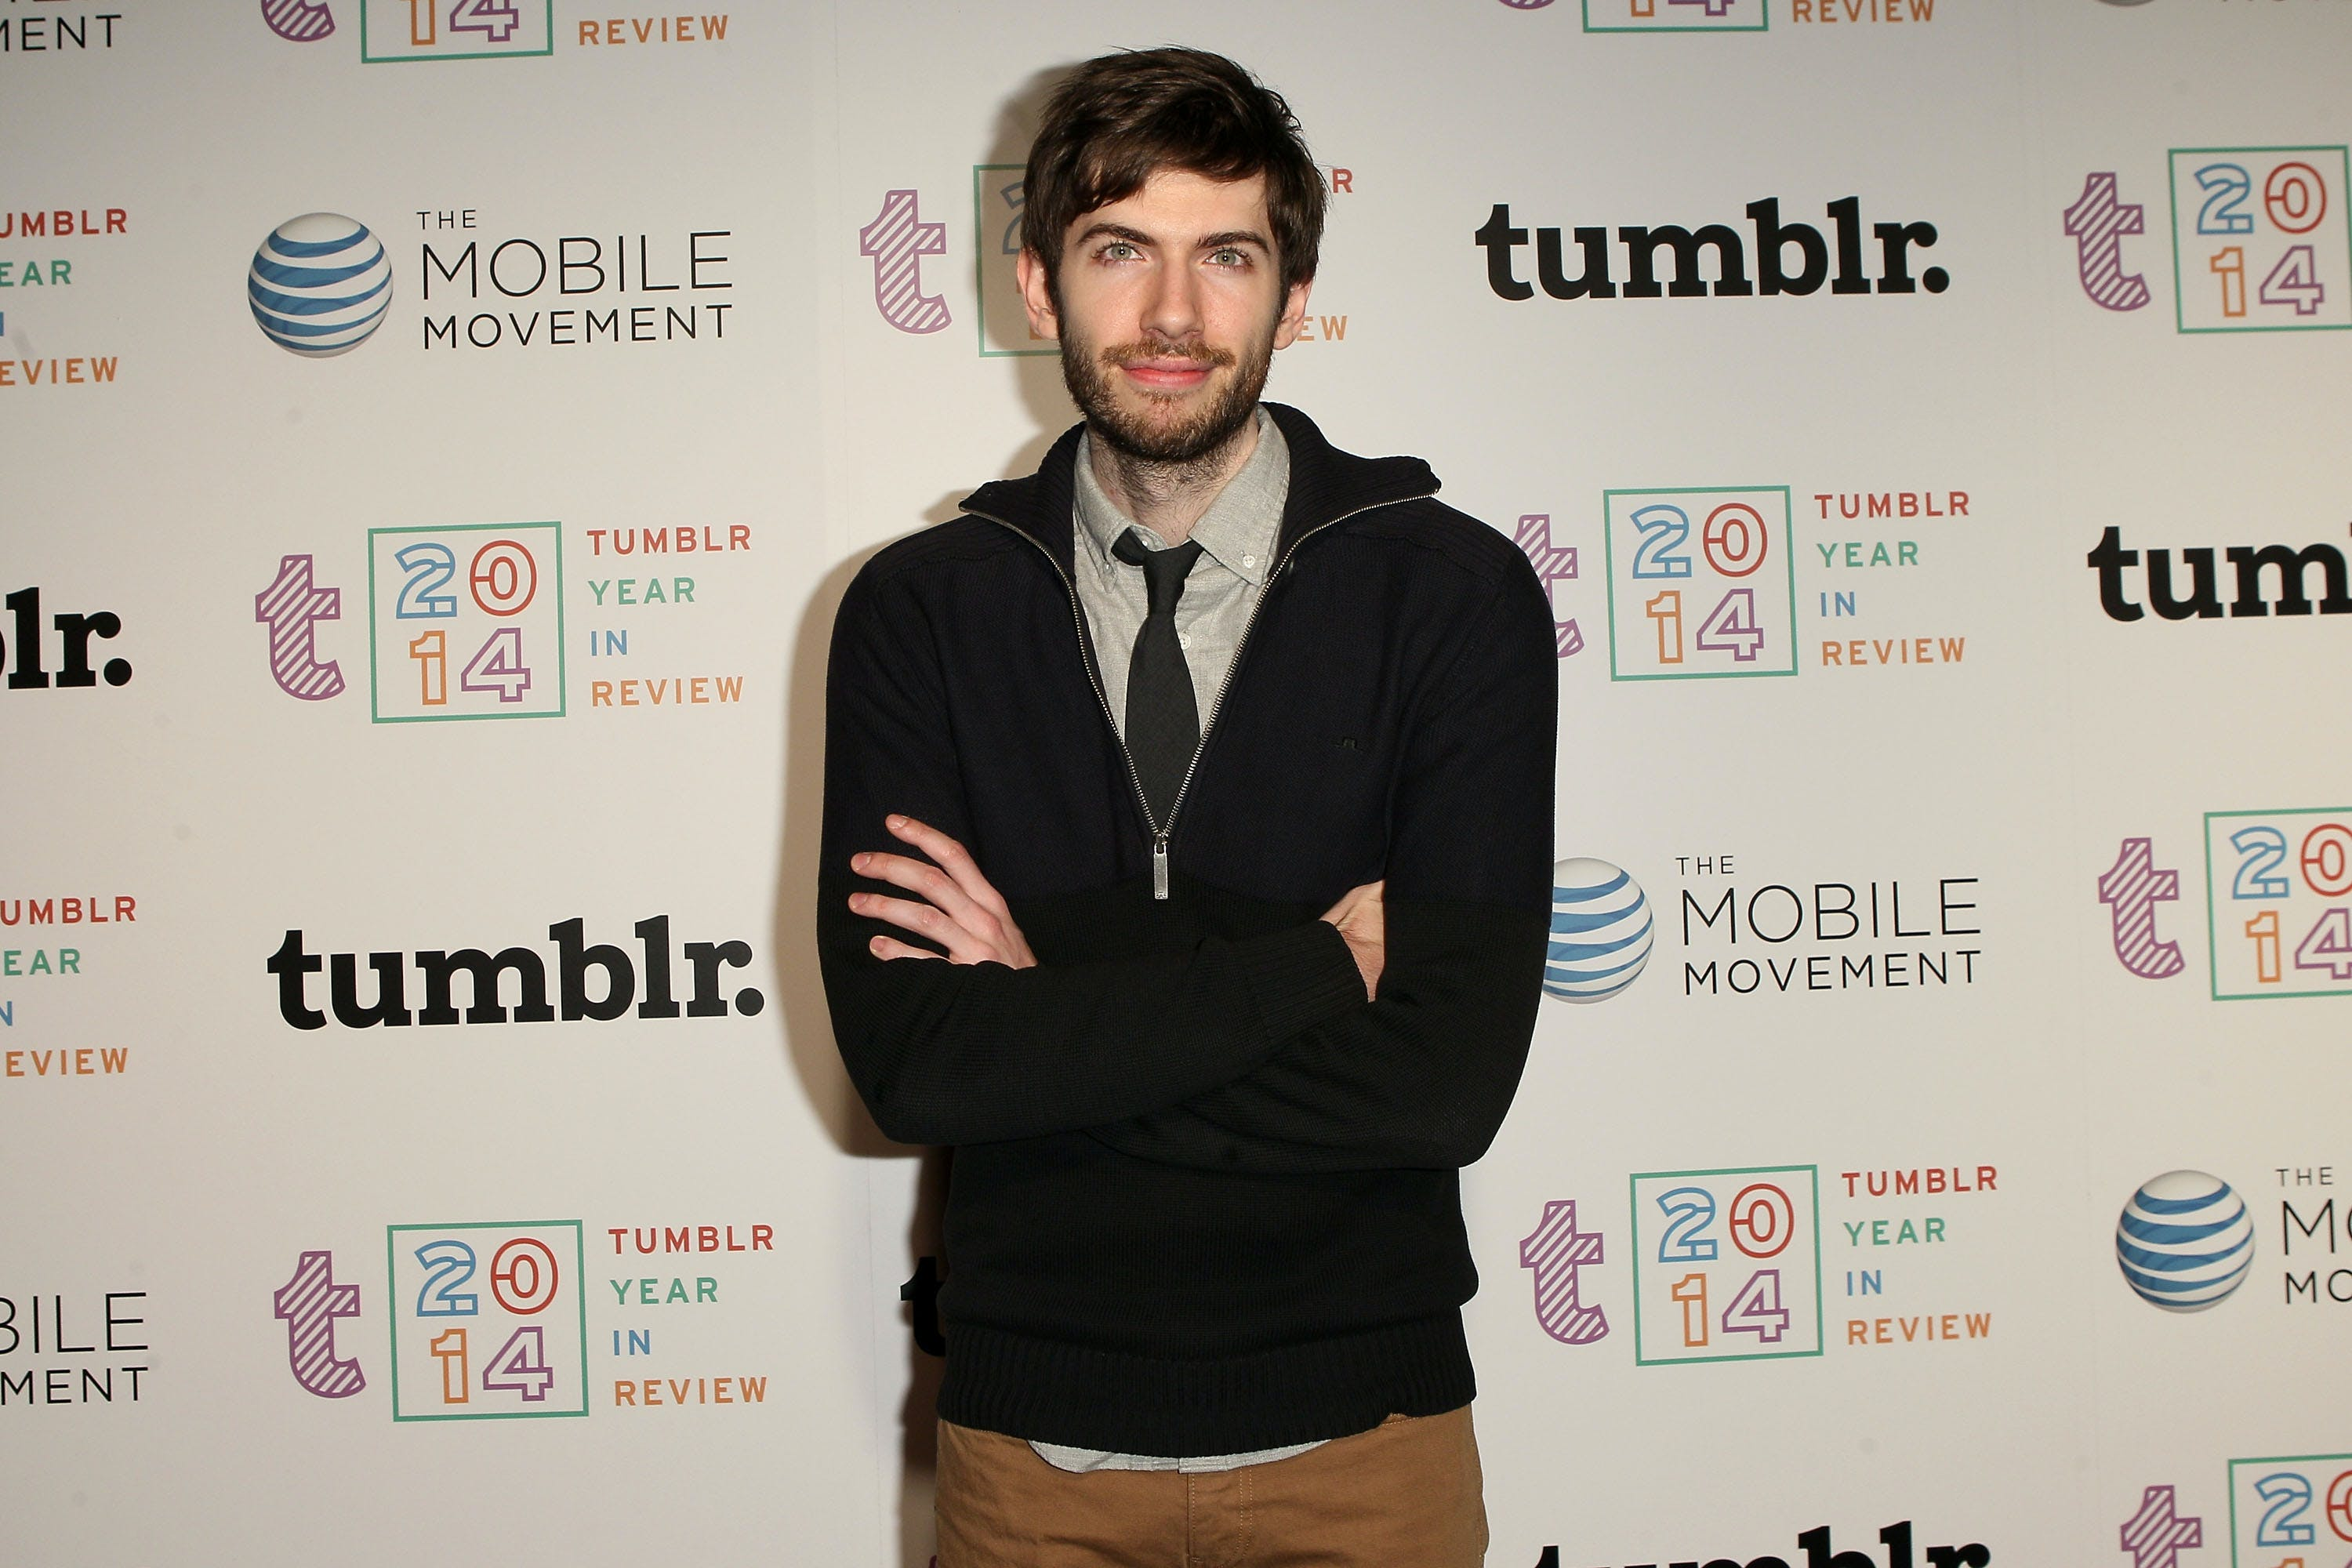 DAVID KARP: THE FOUNDER AND FORMER CEO OF TUMBLR